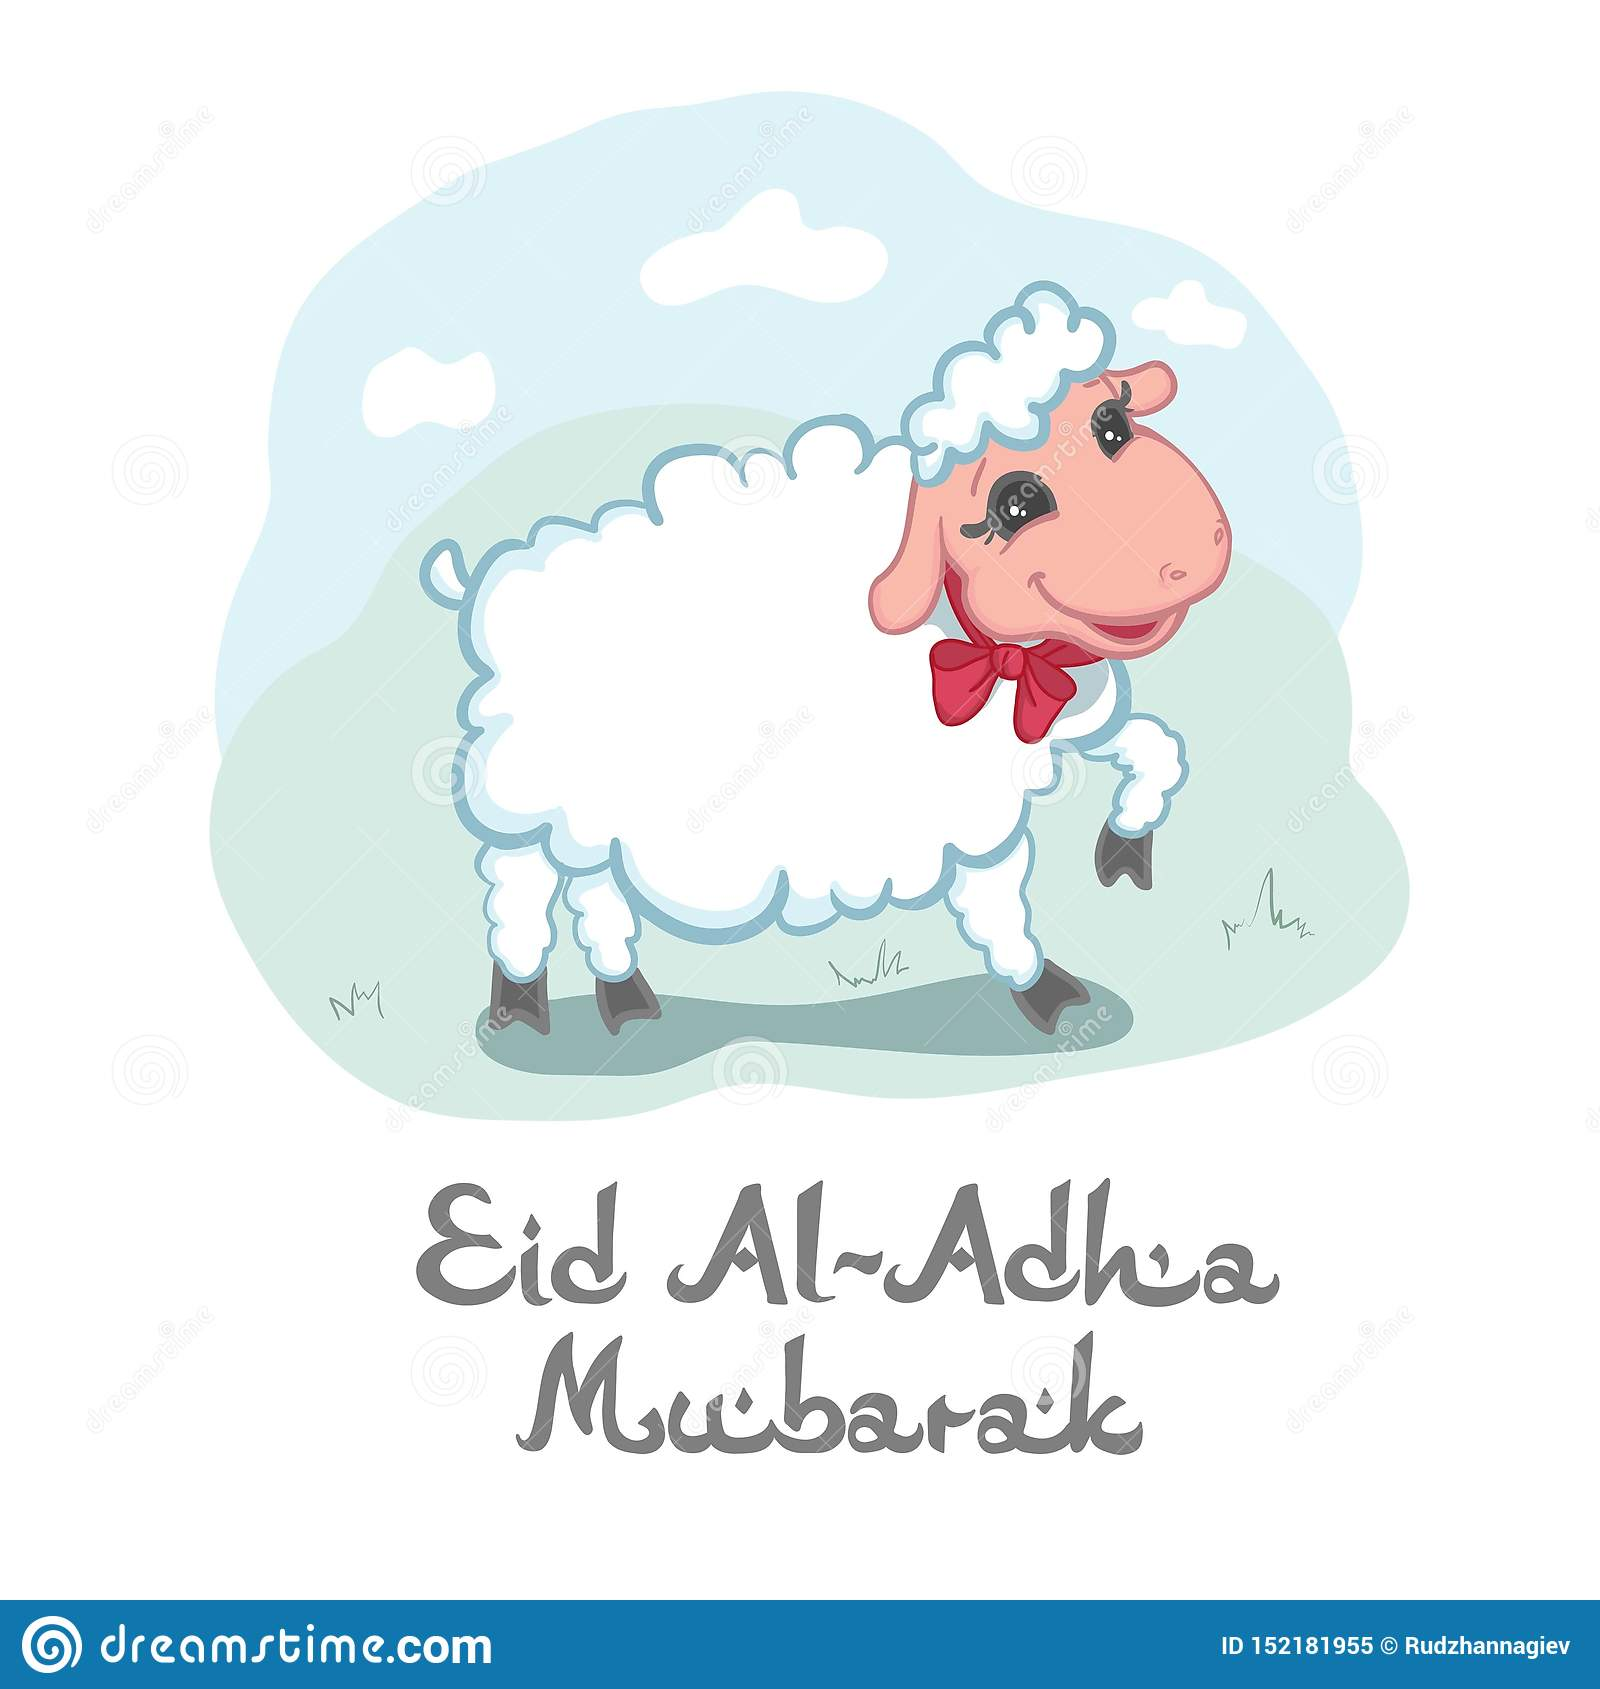 Eid Al-Adha Mubarak card design with cute little woolly white sacrificial lamb